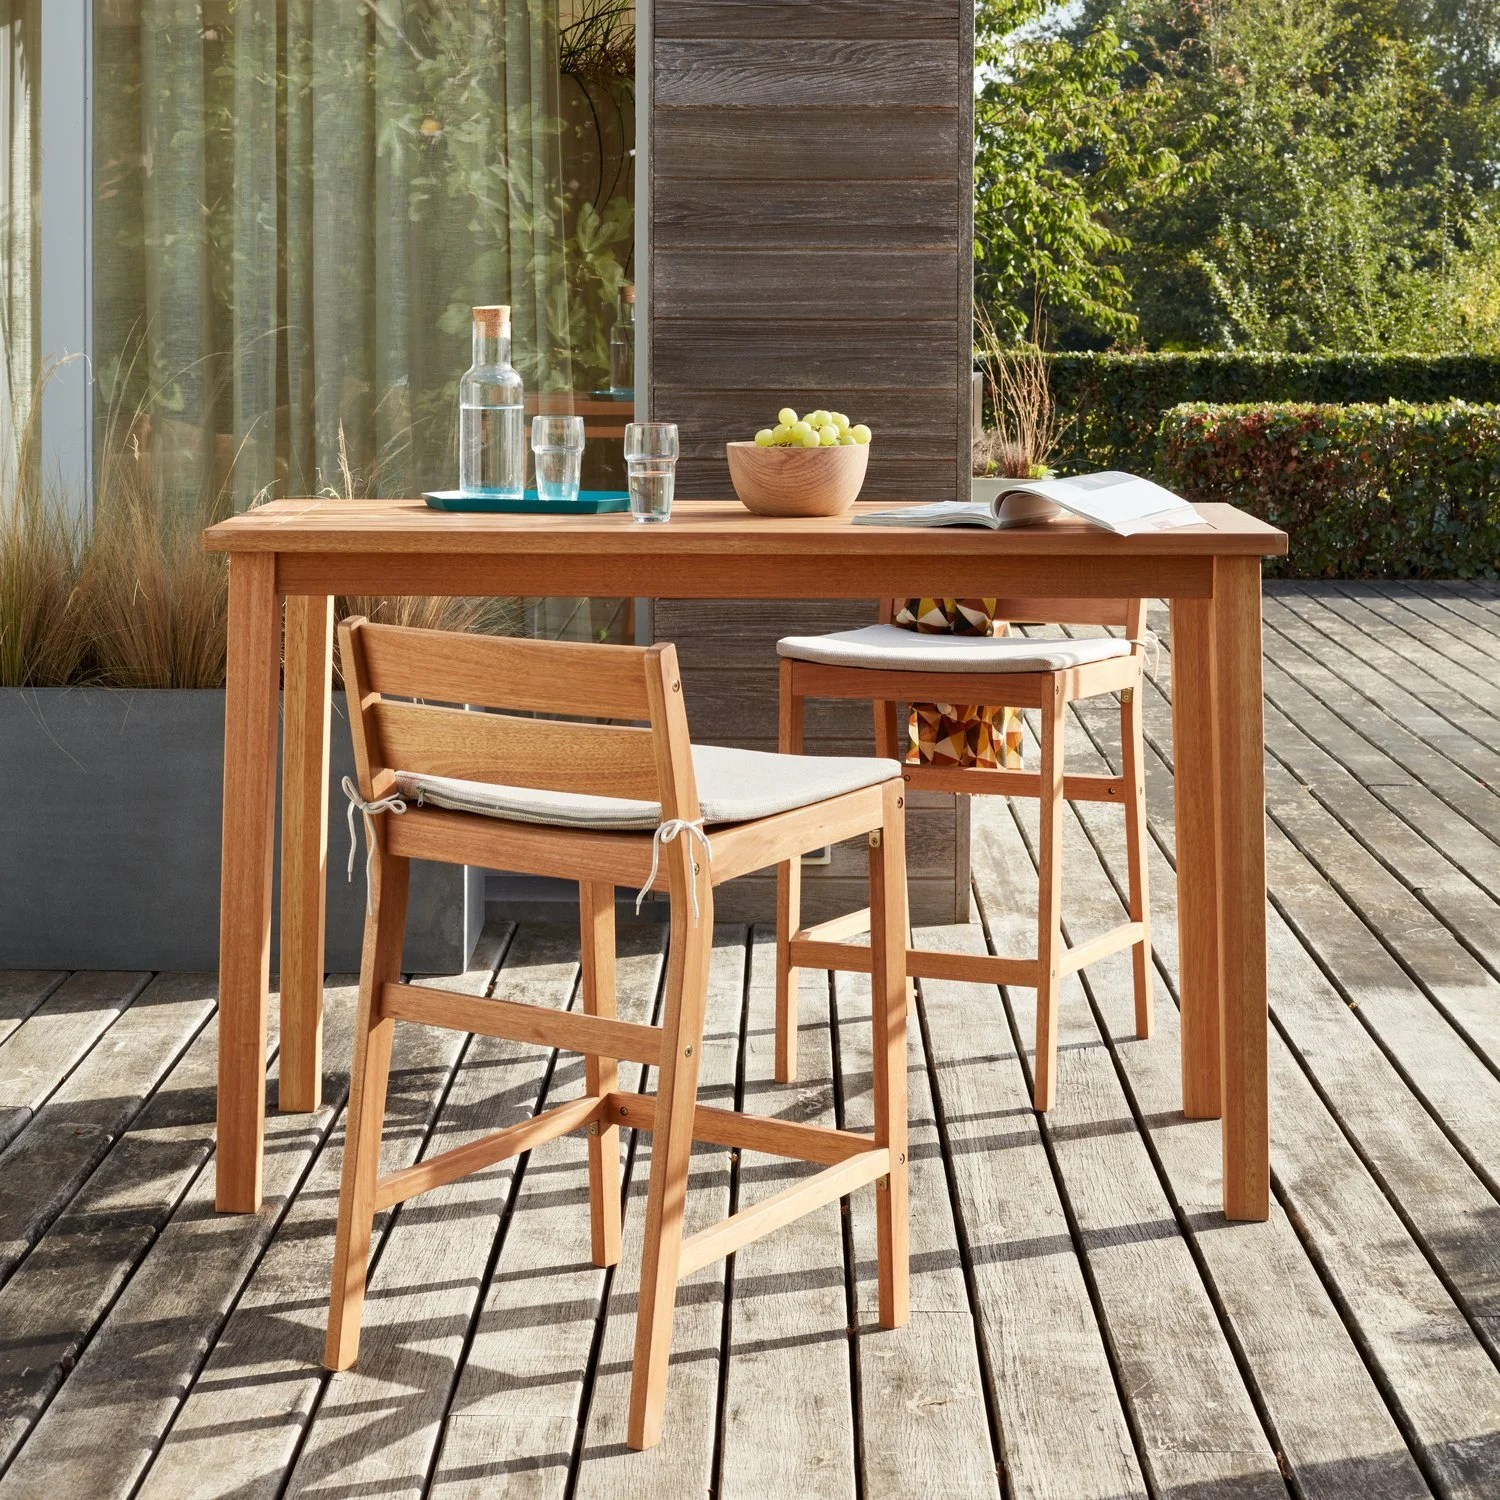 Bar De Terrasse Exterieur La Nouvelle Collection De Salon De Jardin 2019 Leroy Merlin